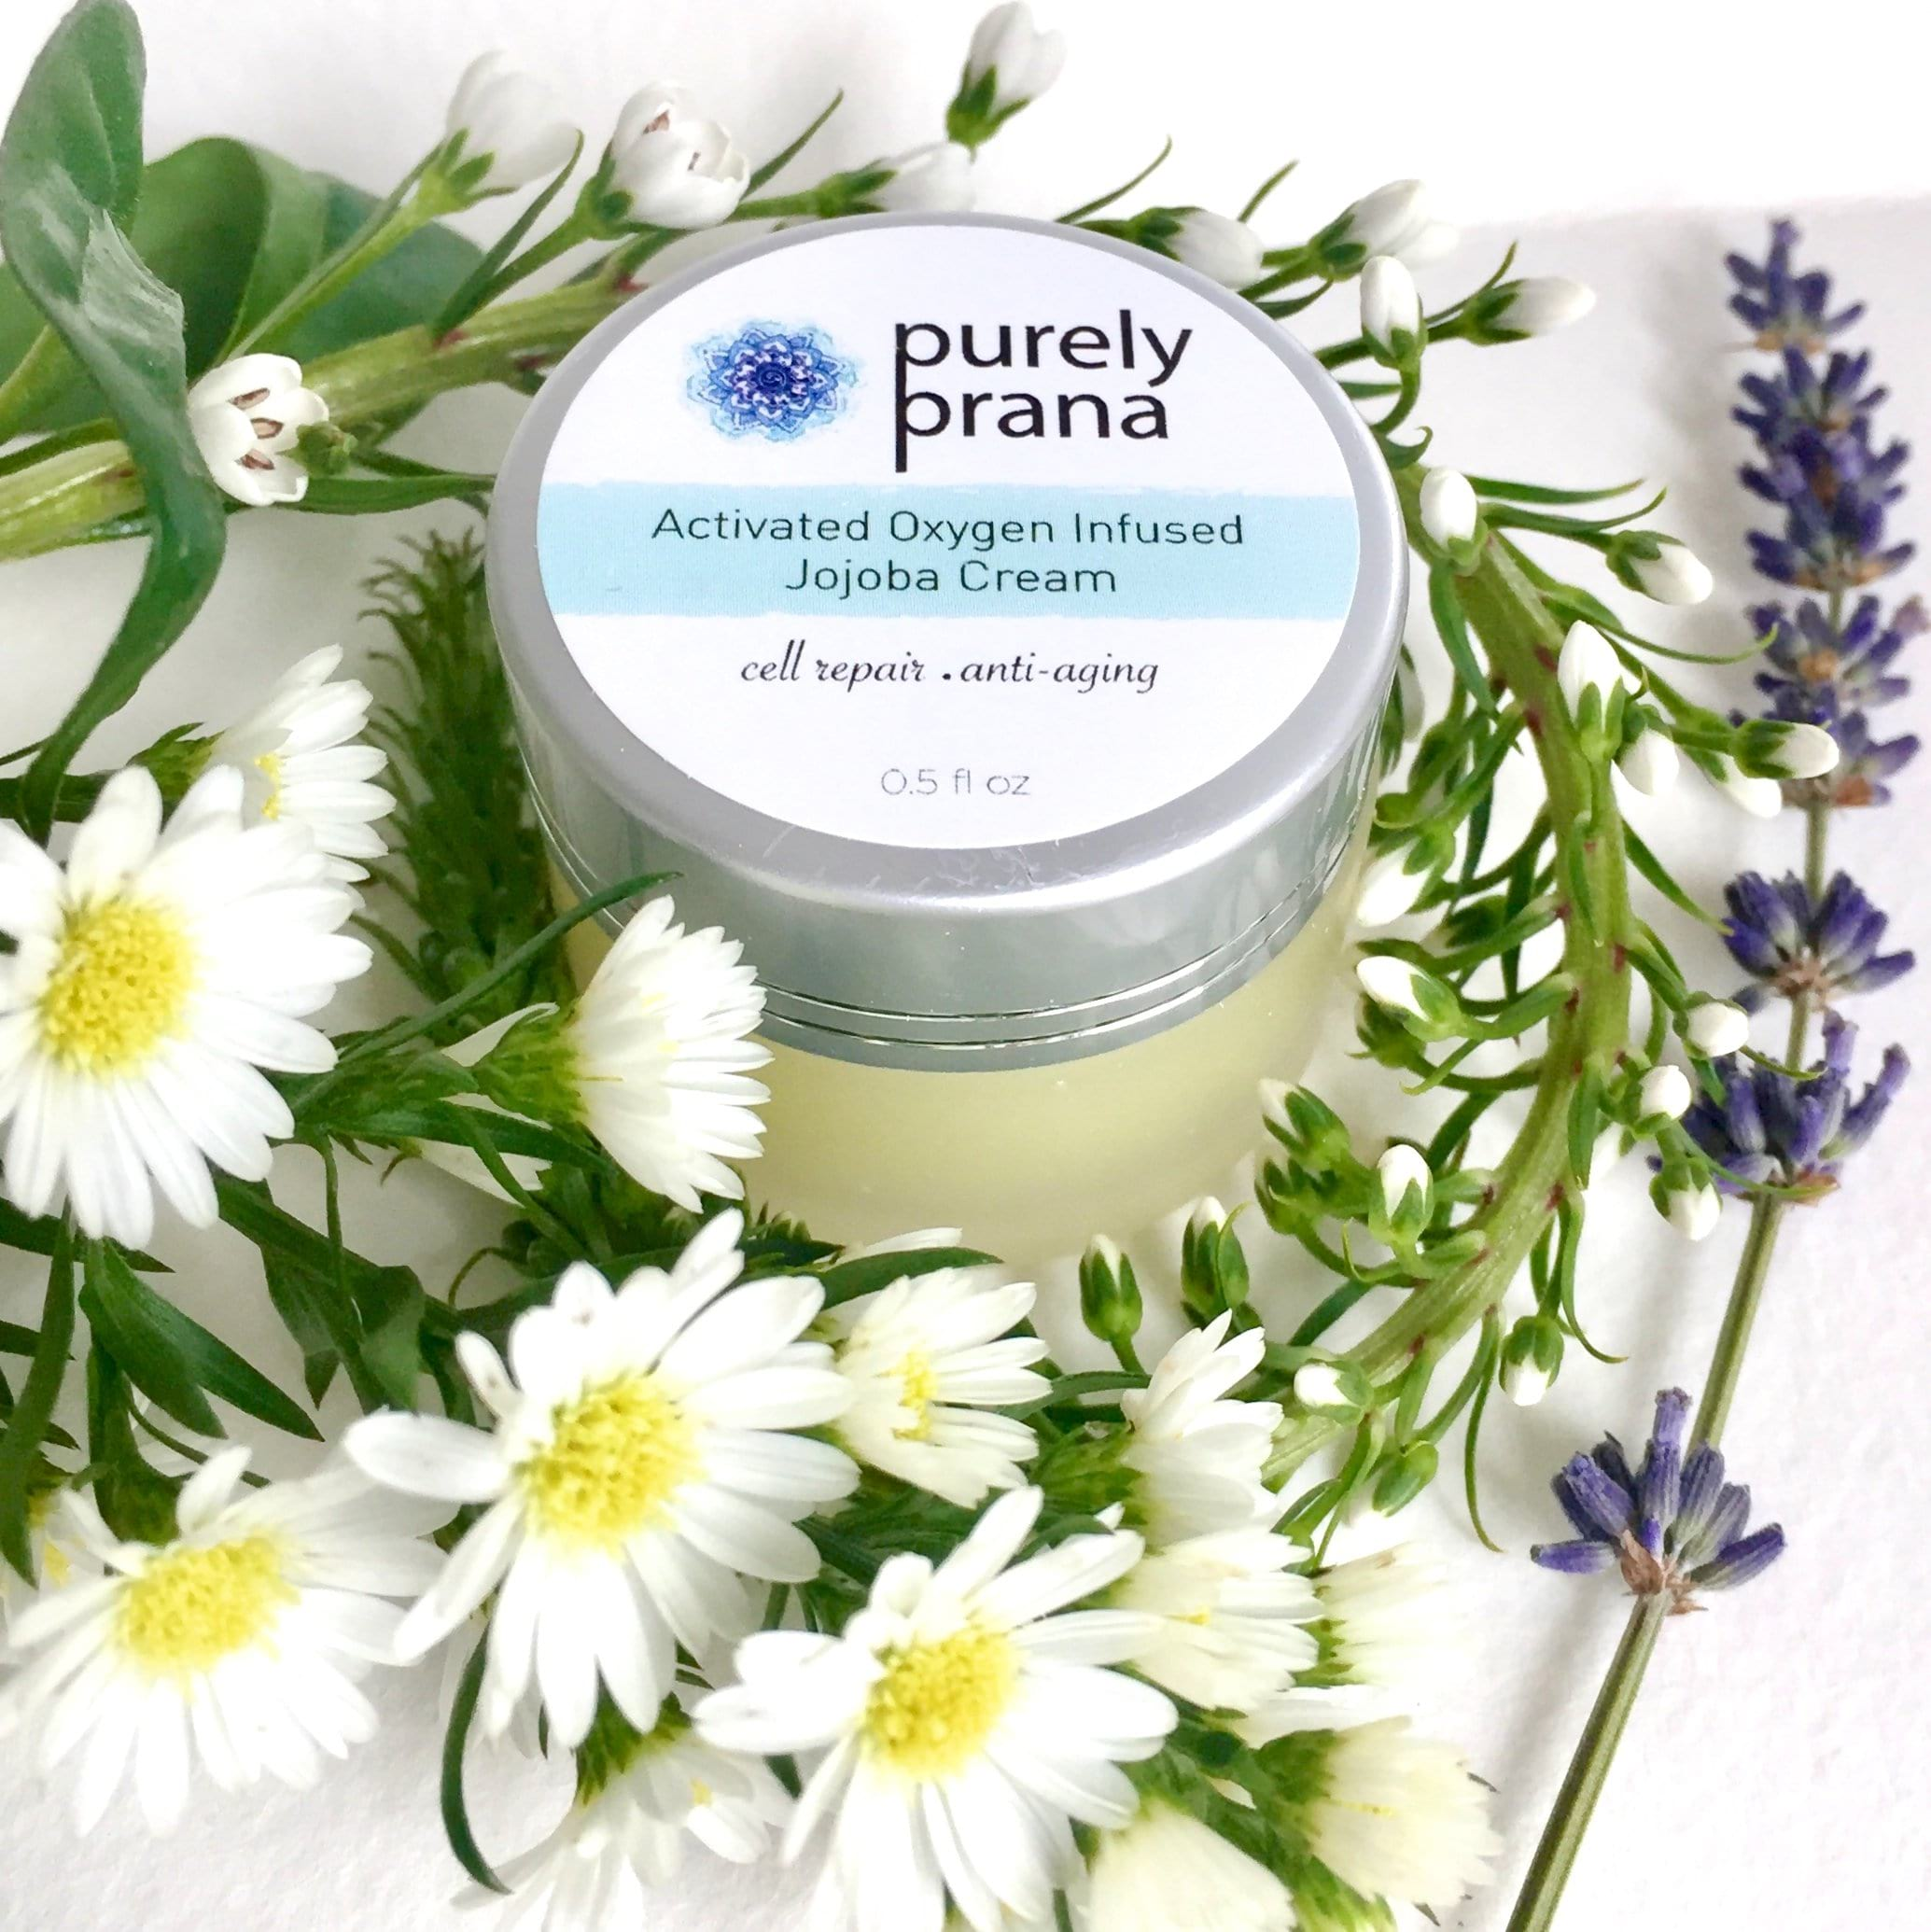 Activated Oxygen Infused Jojoba Cream, purely prana, organic skin care cream, all natural skin care products, all natural skin care brands